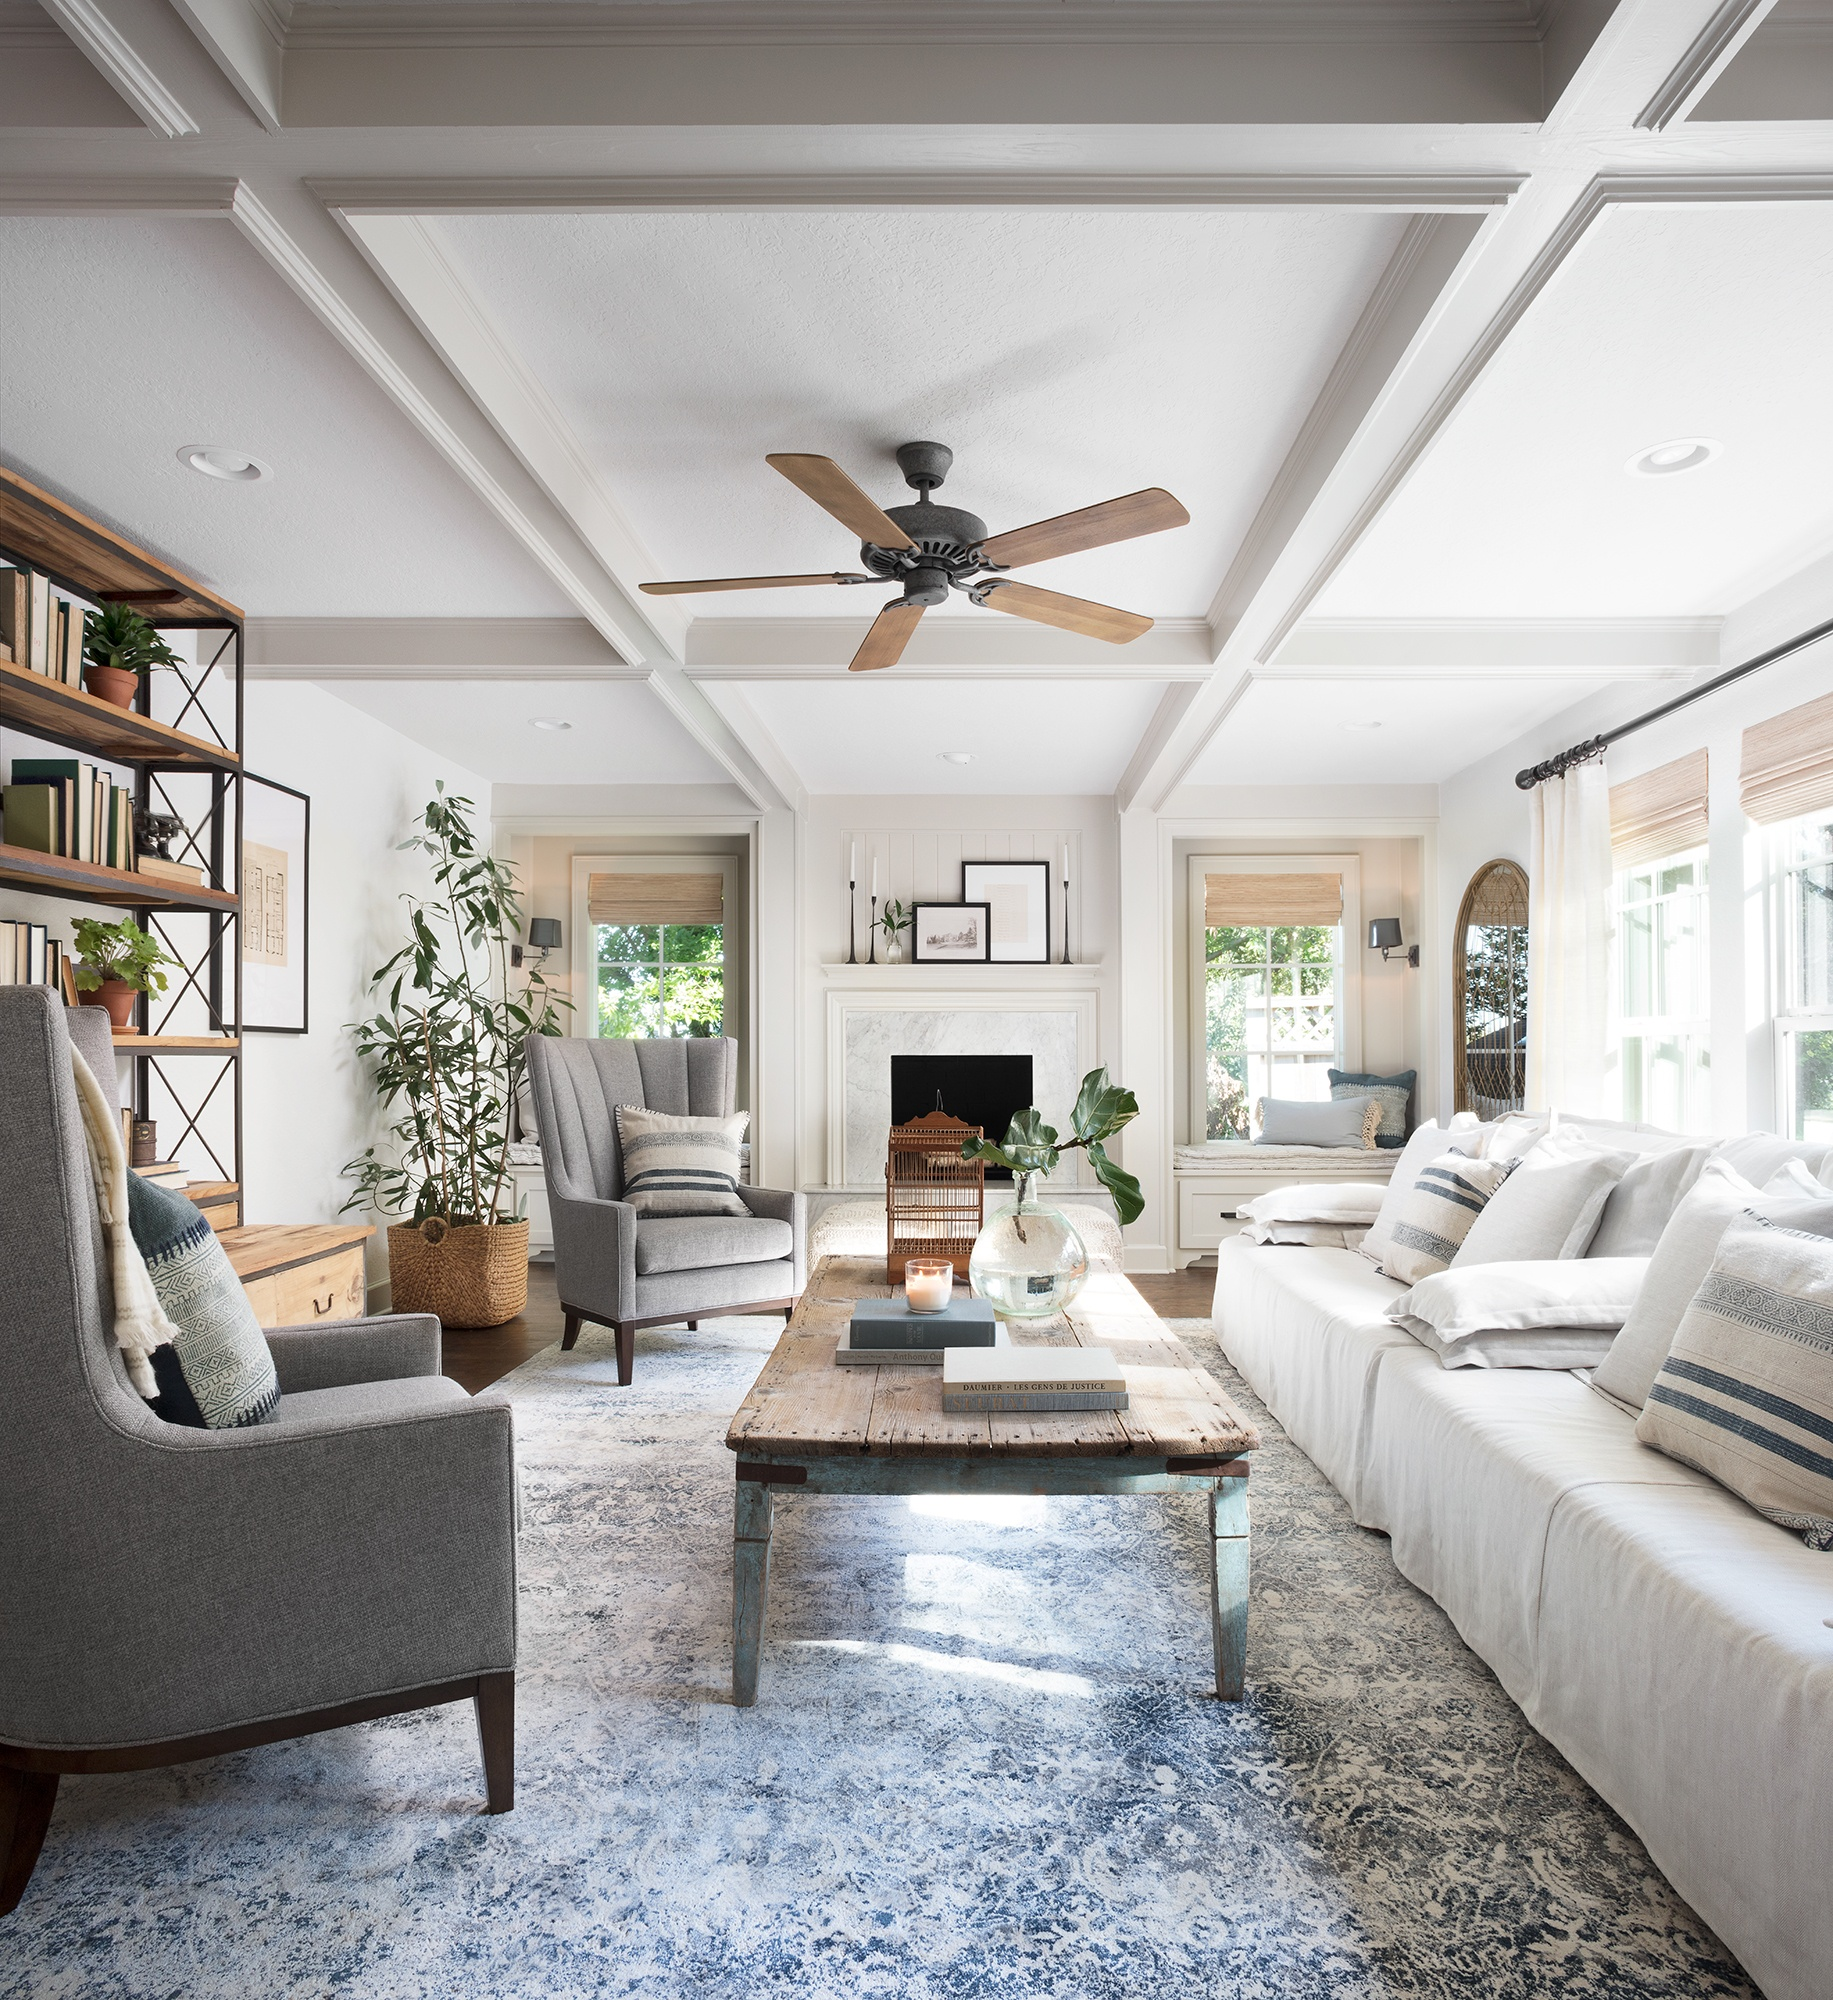 Pictures Of A Living Room: Get This Look: Fixer Upper Mountain House